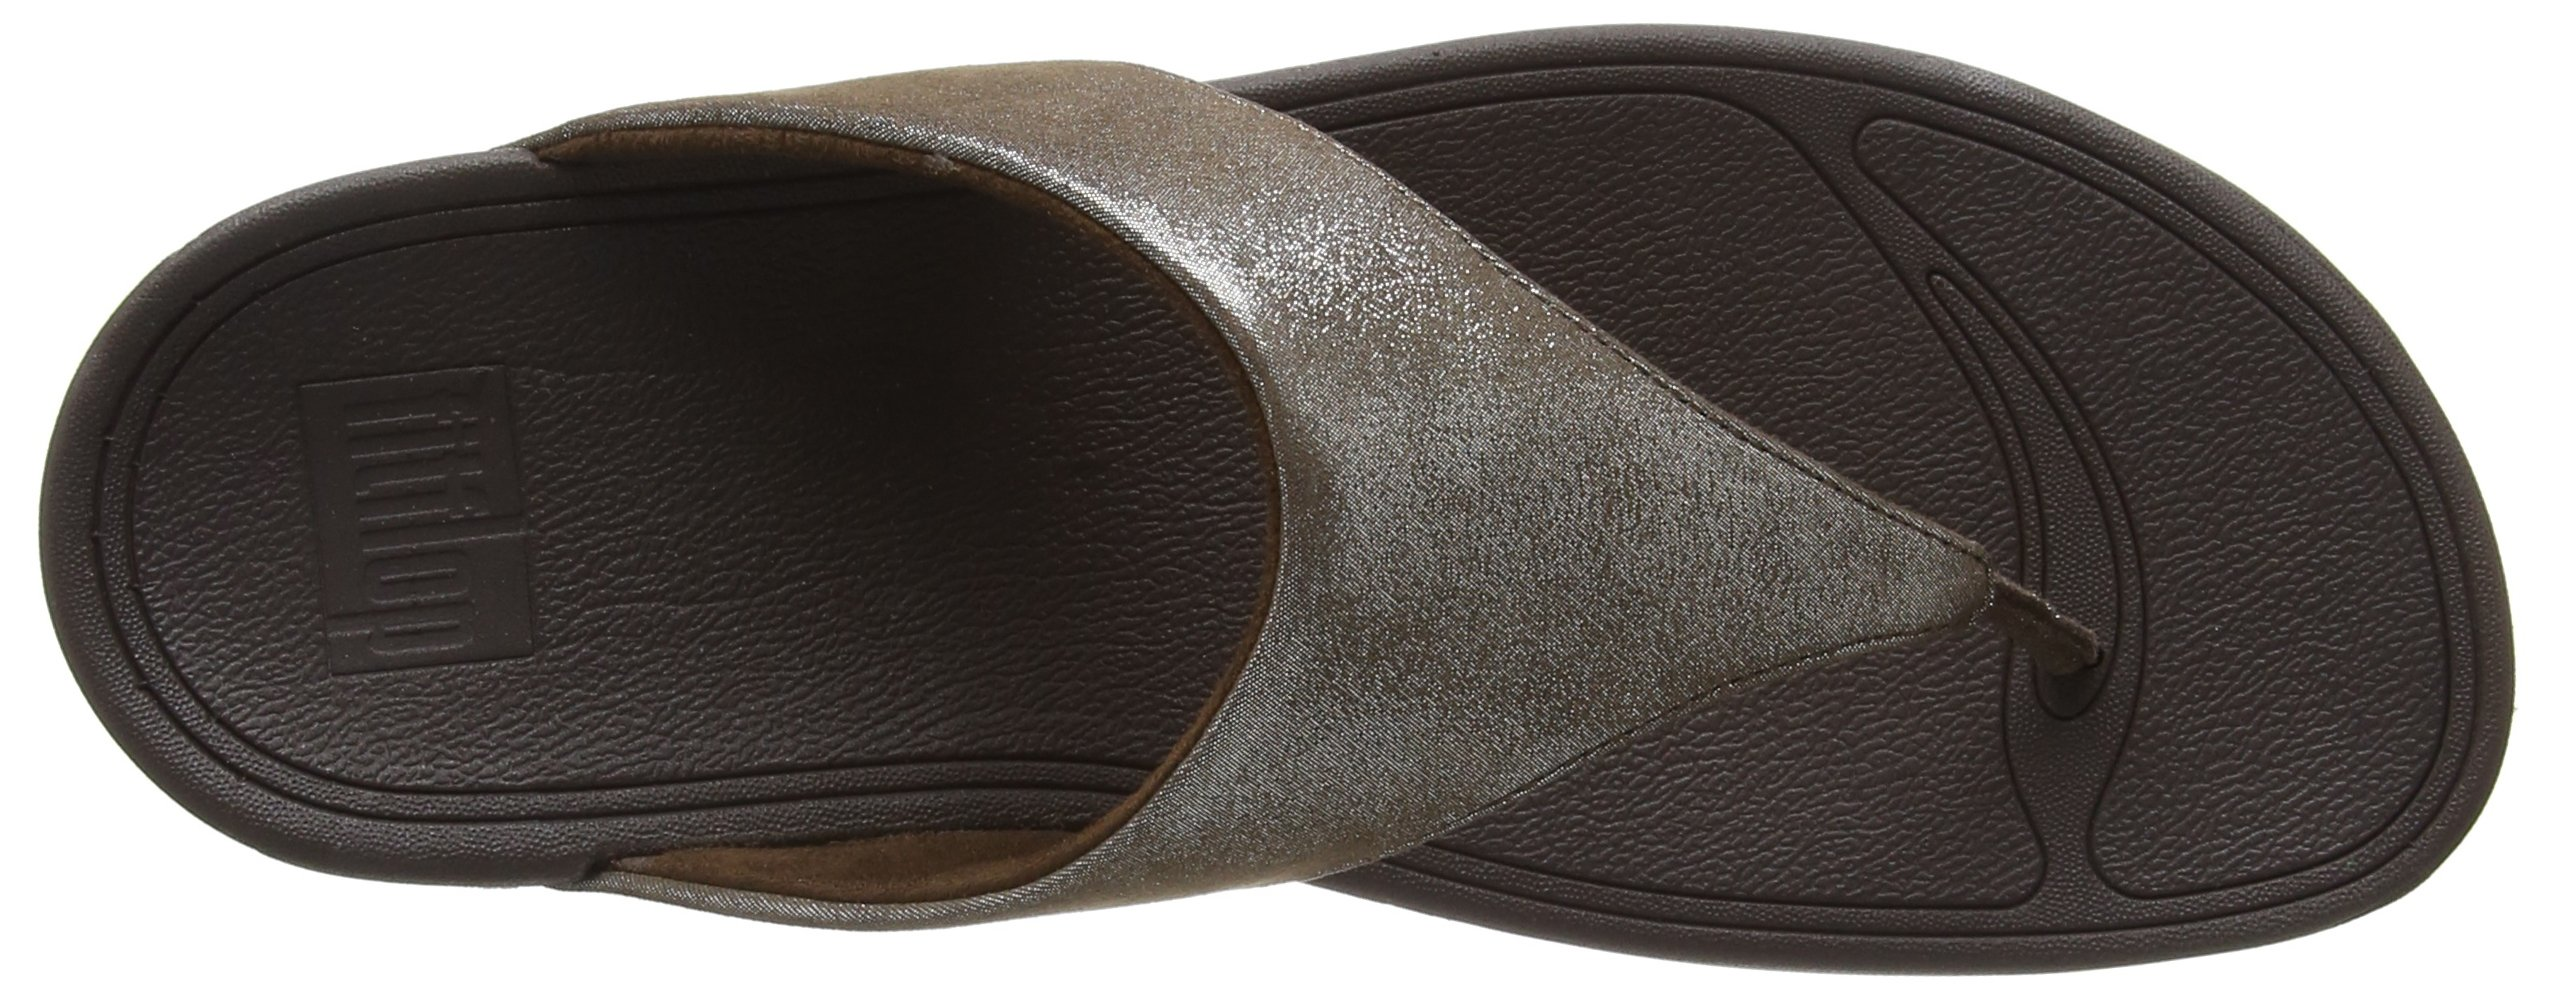 FitFlop Women's Lulu Shimmersuede Flip Flop, Bronze, 9 M US by FitFlop (Image #8)